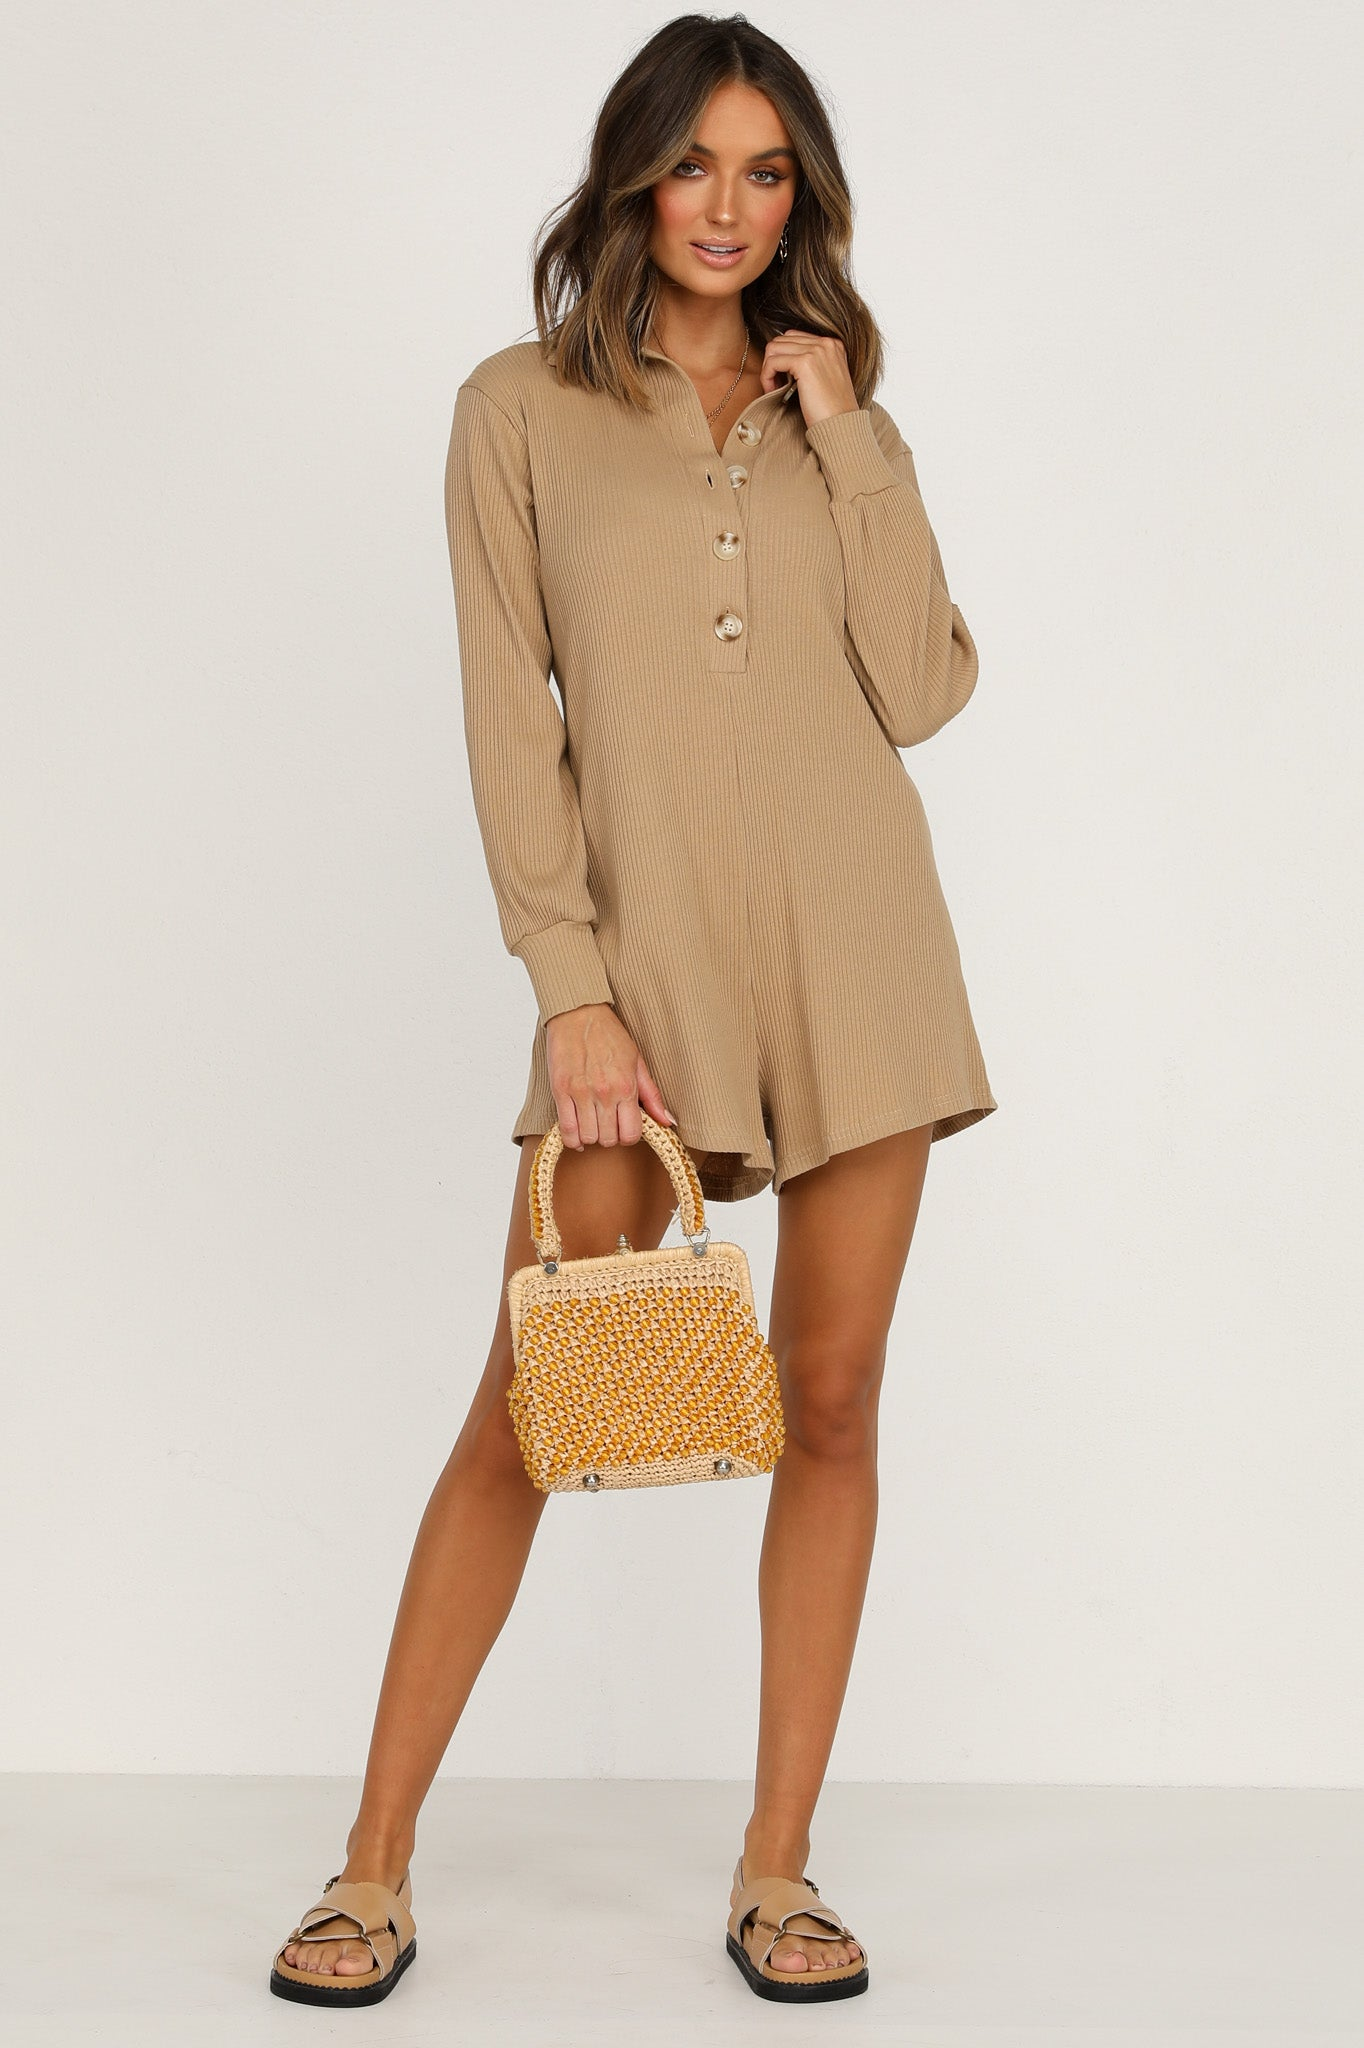 Between The Lines Playsuit